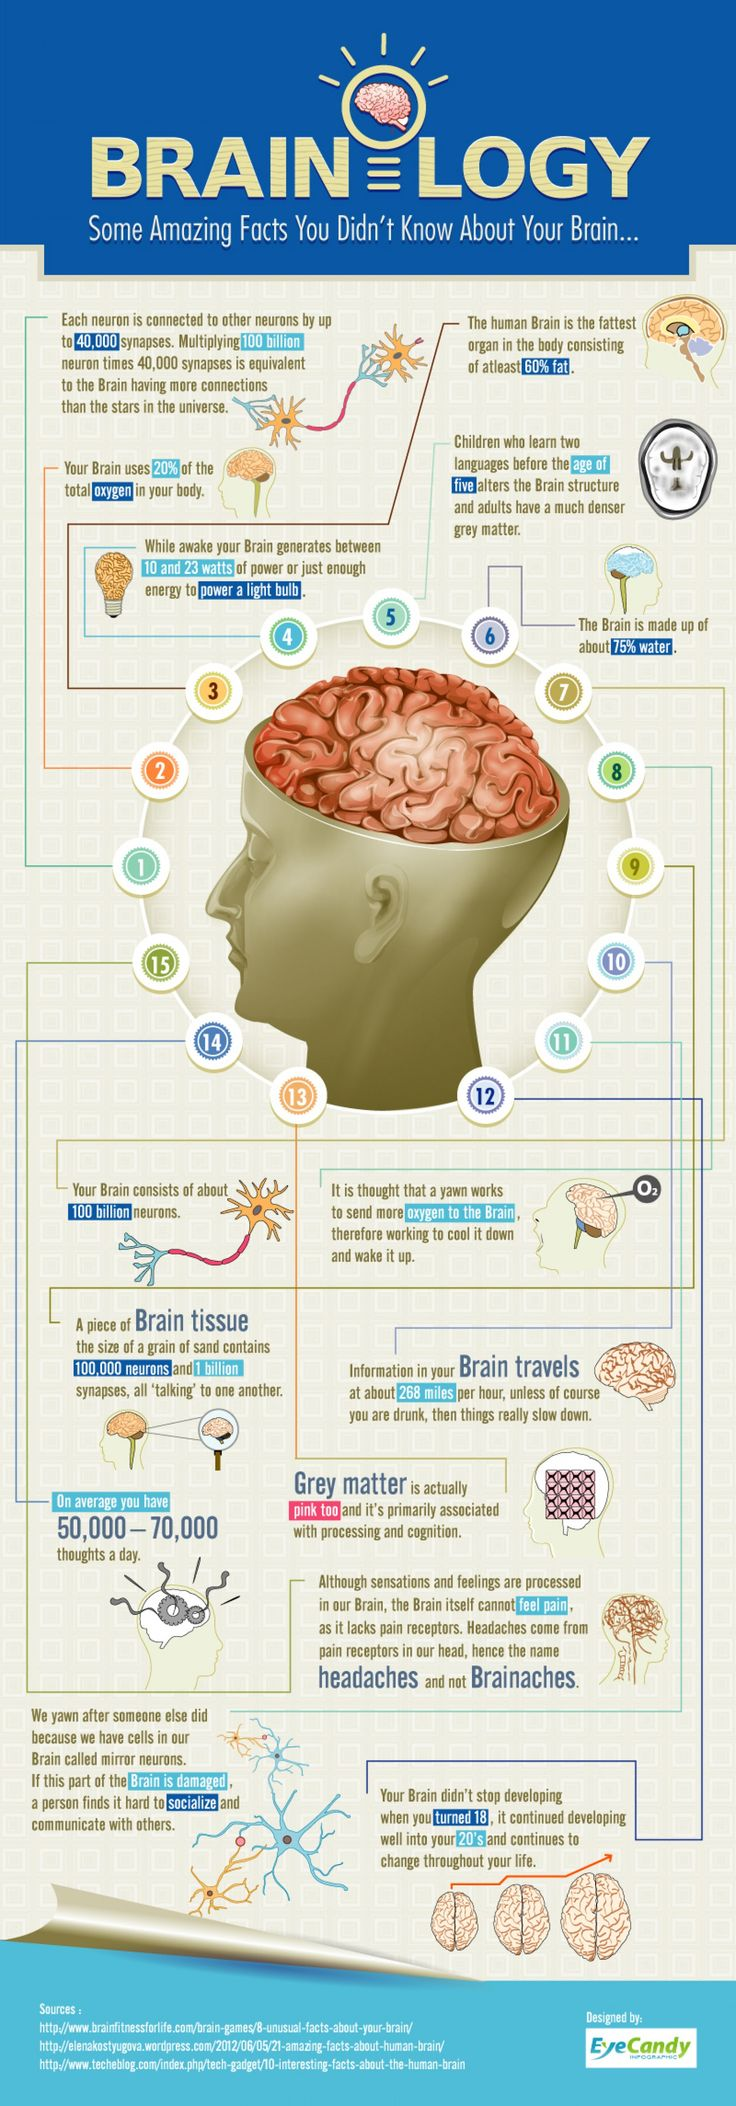 some-amazing-facts-you-didnt-know-about-your-brain